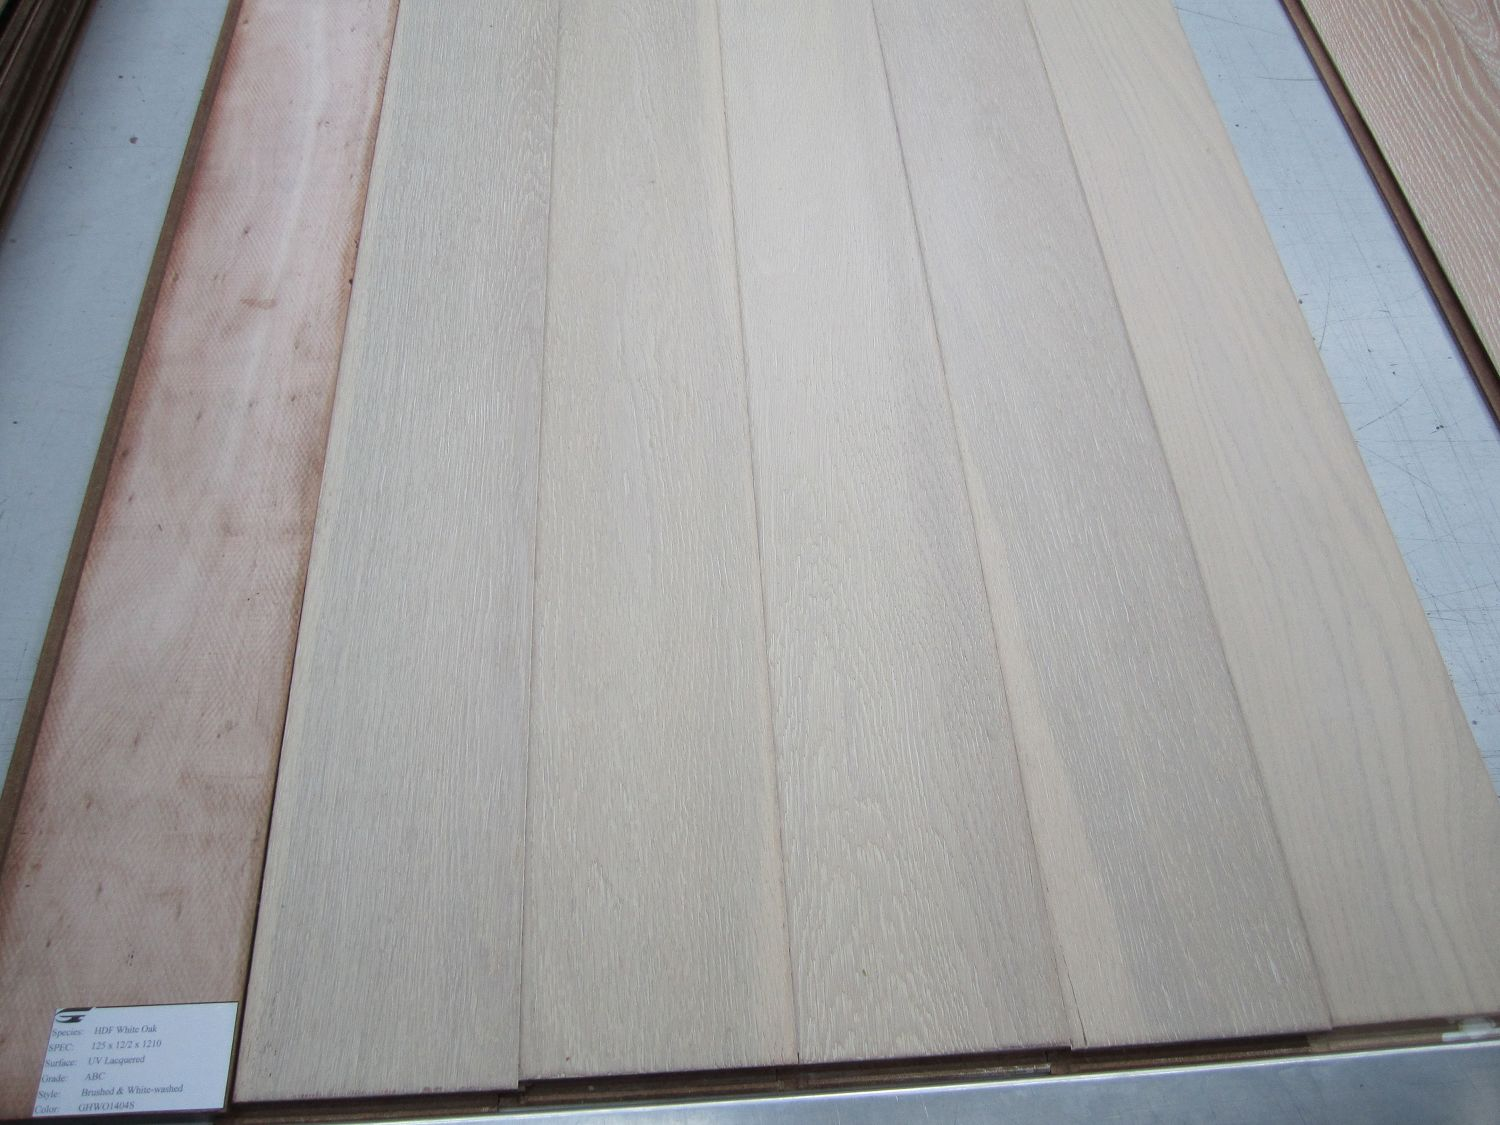 HDF WOOD FLOORING 2 LAYERS, 5 LAYERS AVALIZBLE